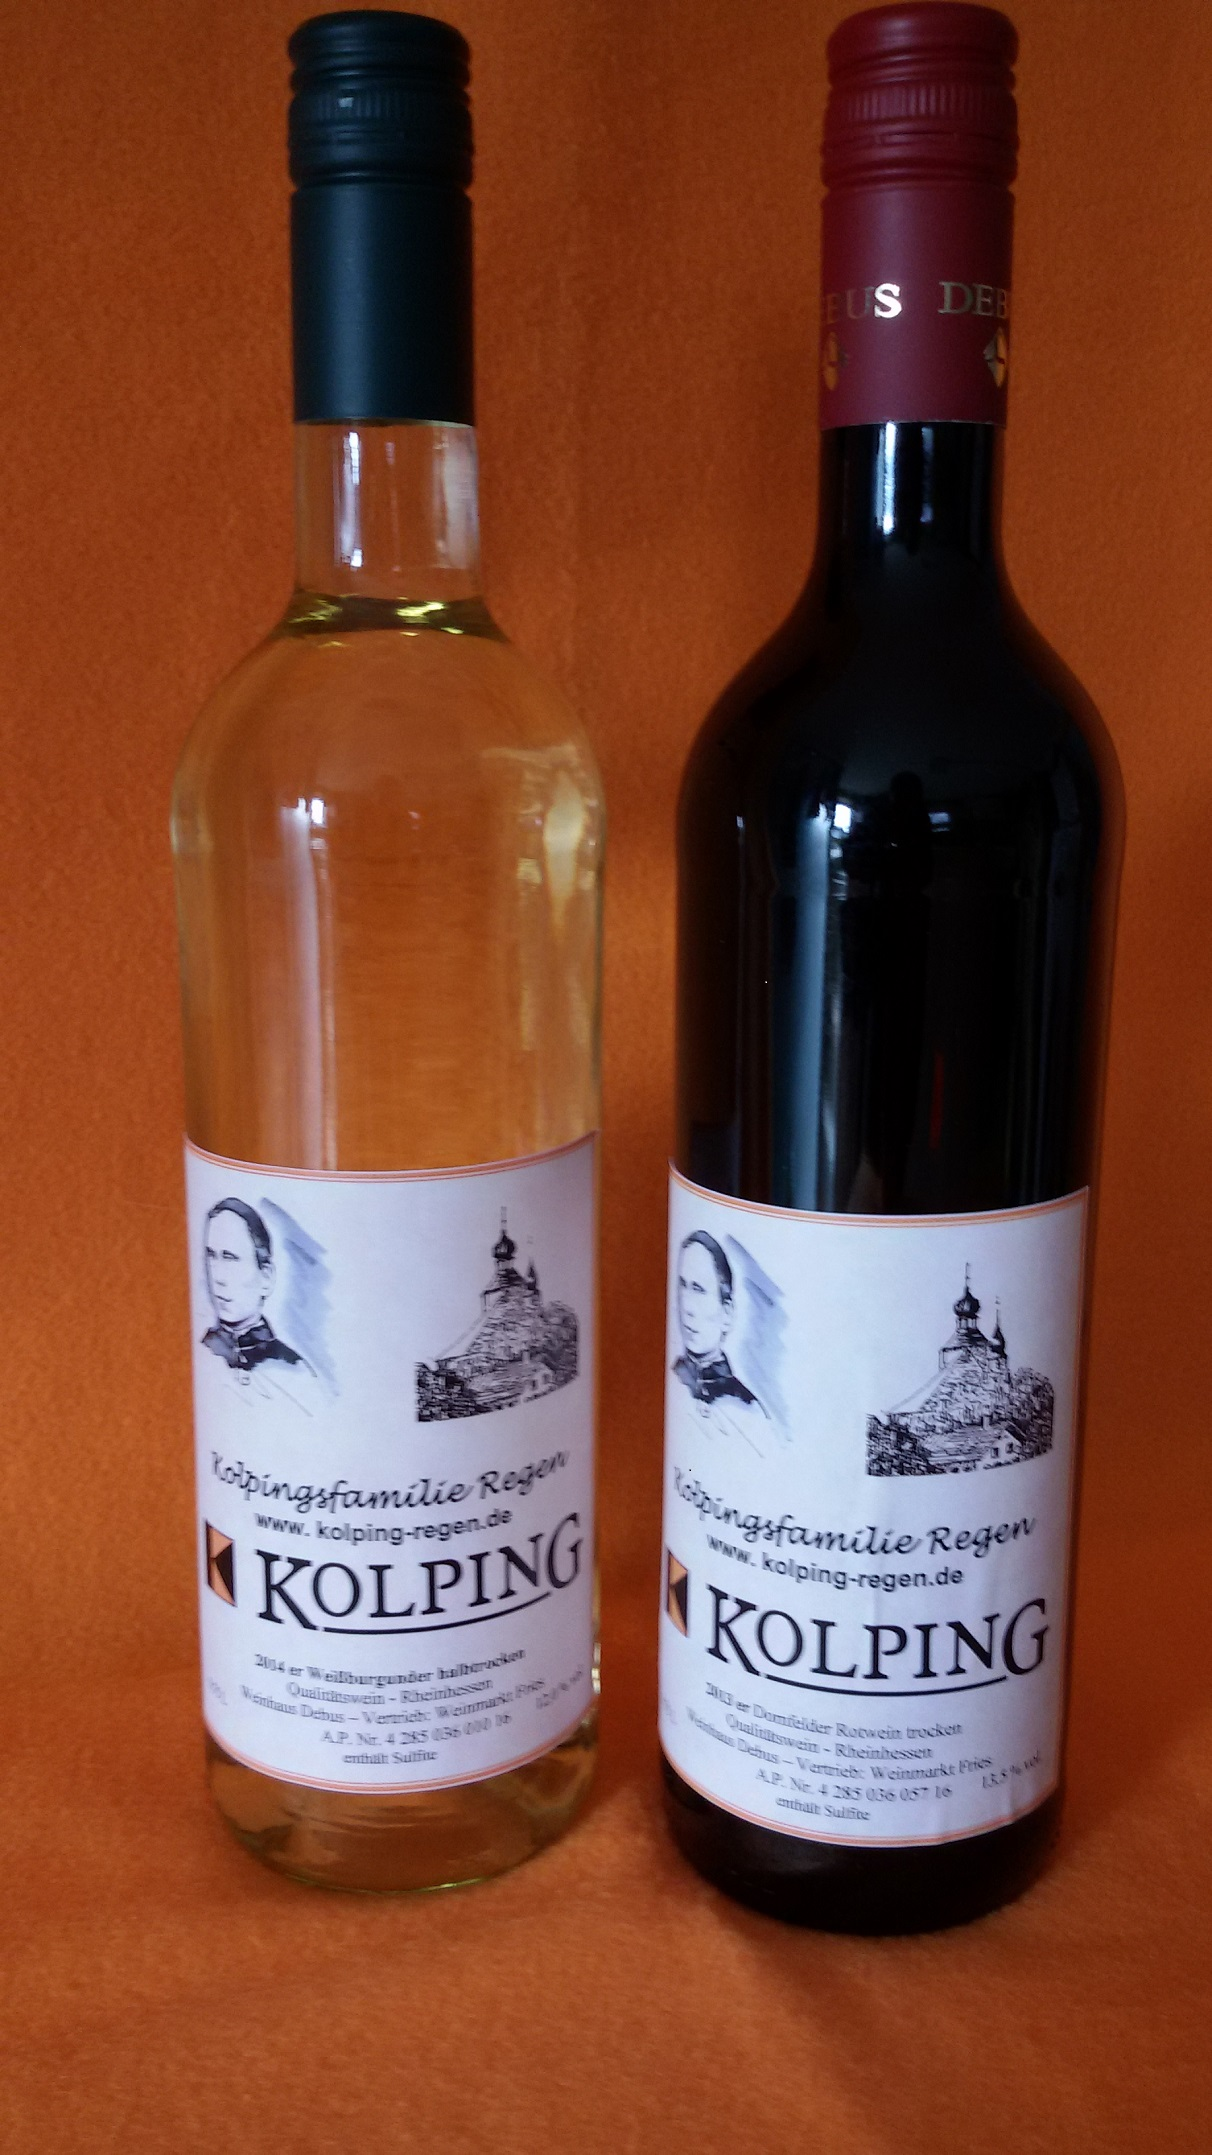 Kolping-Wein in Regen